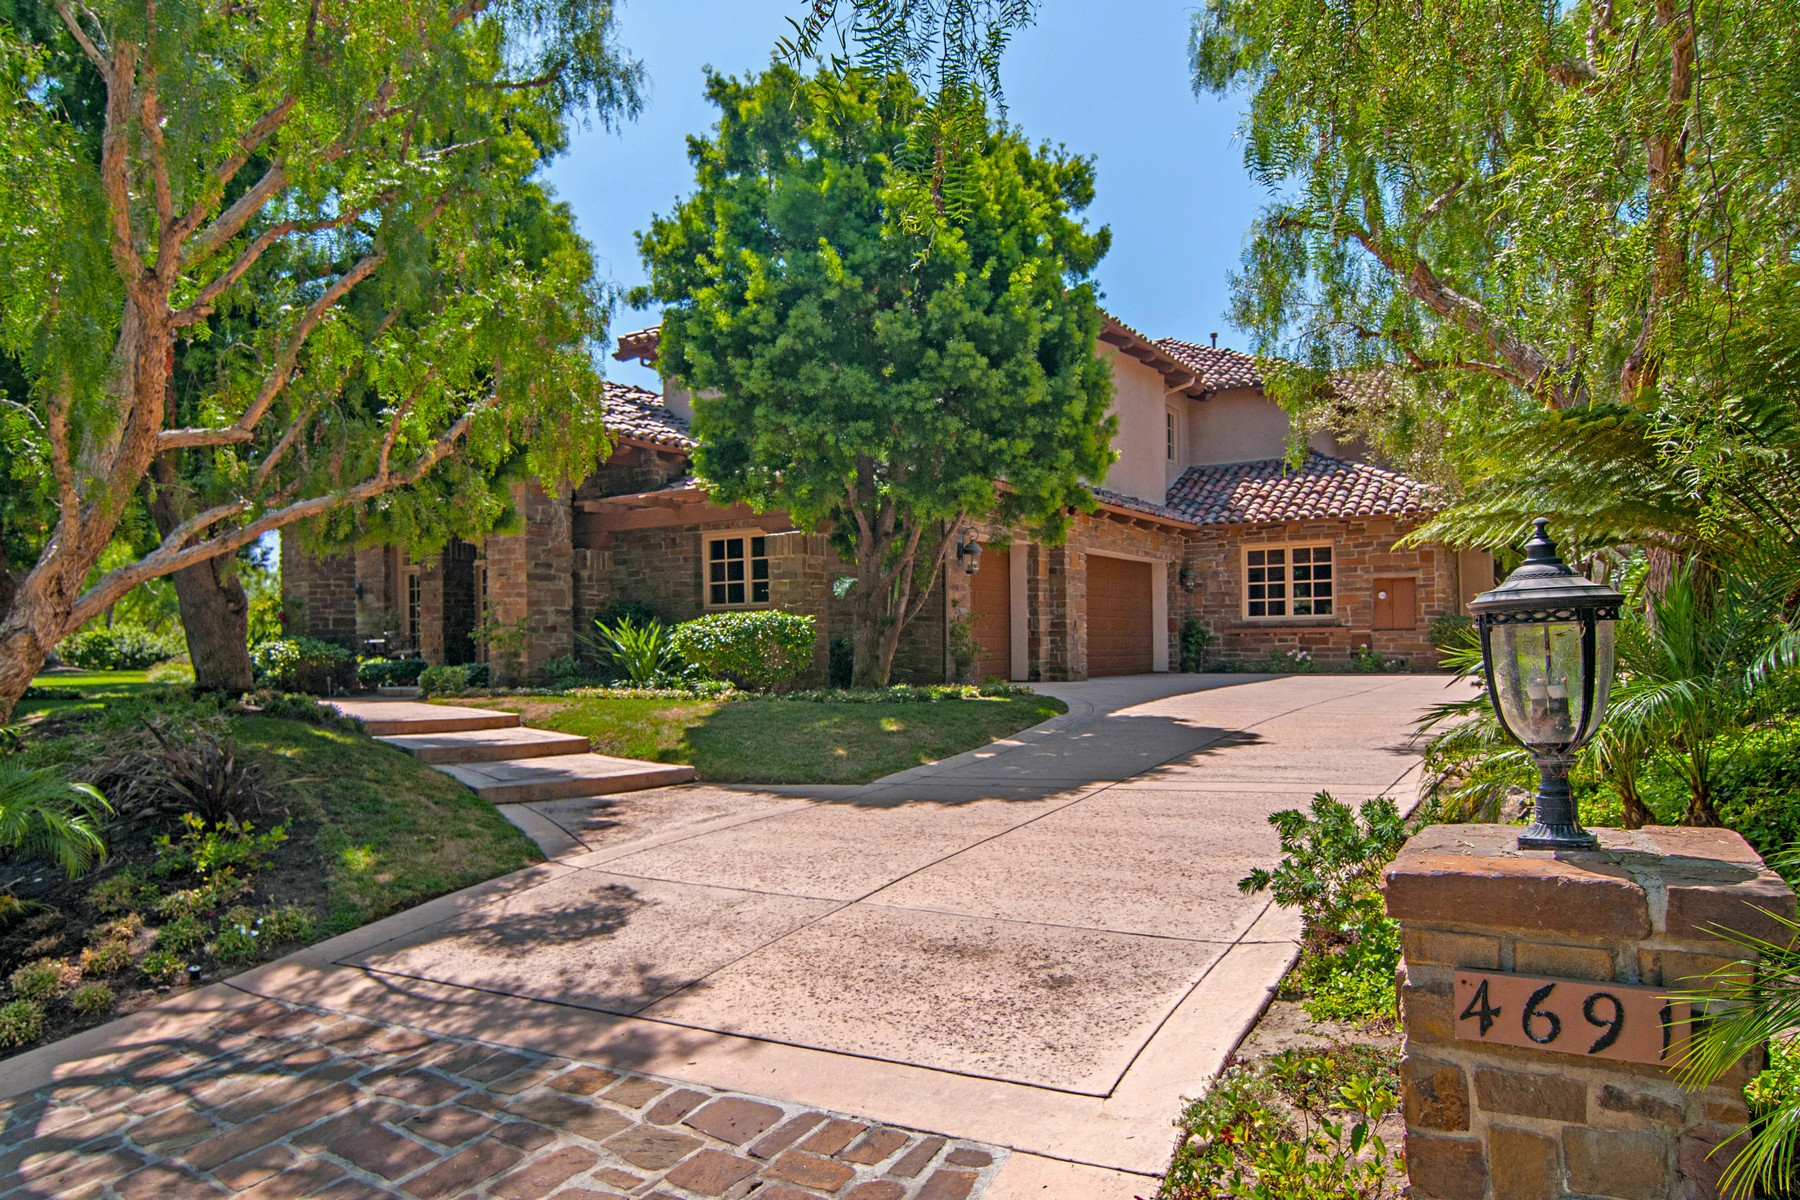 Additional photo for property listing at 4691 Rancho Laguna Bend  San Diego, Калифорния 92130 Соединенные Штаты